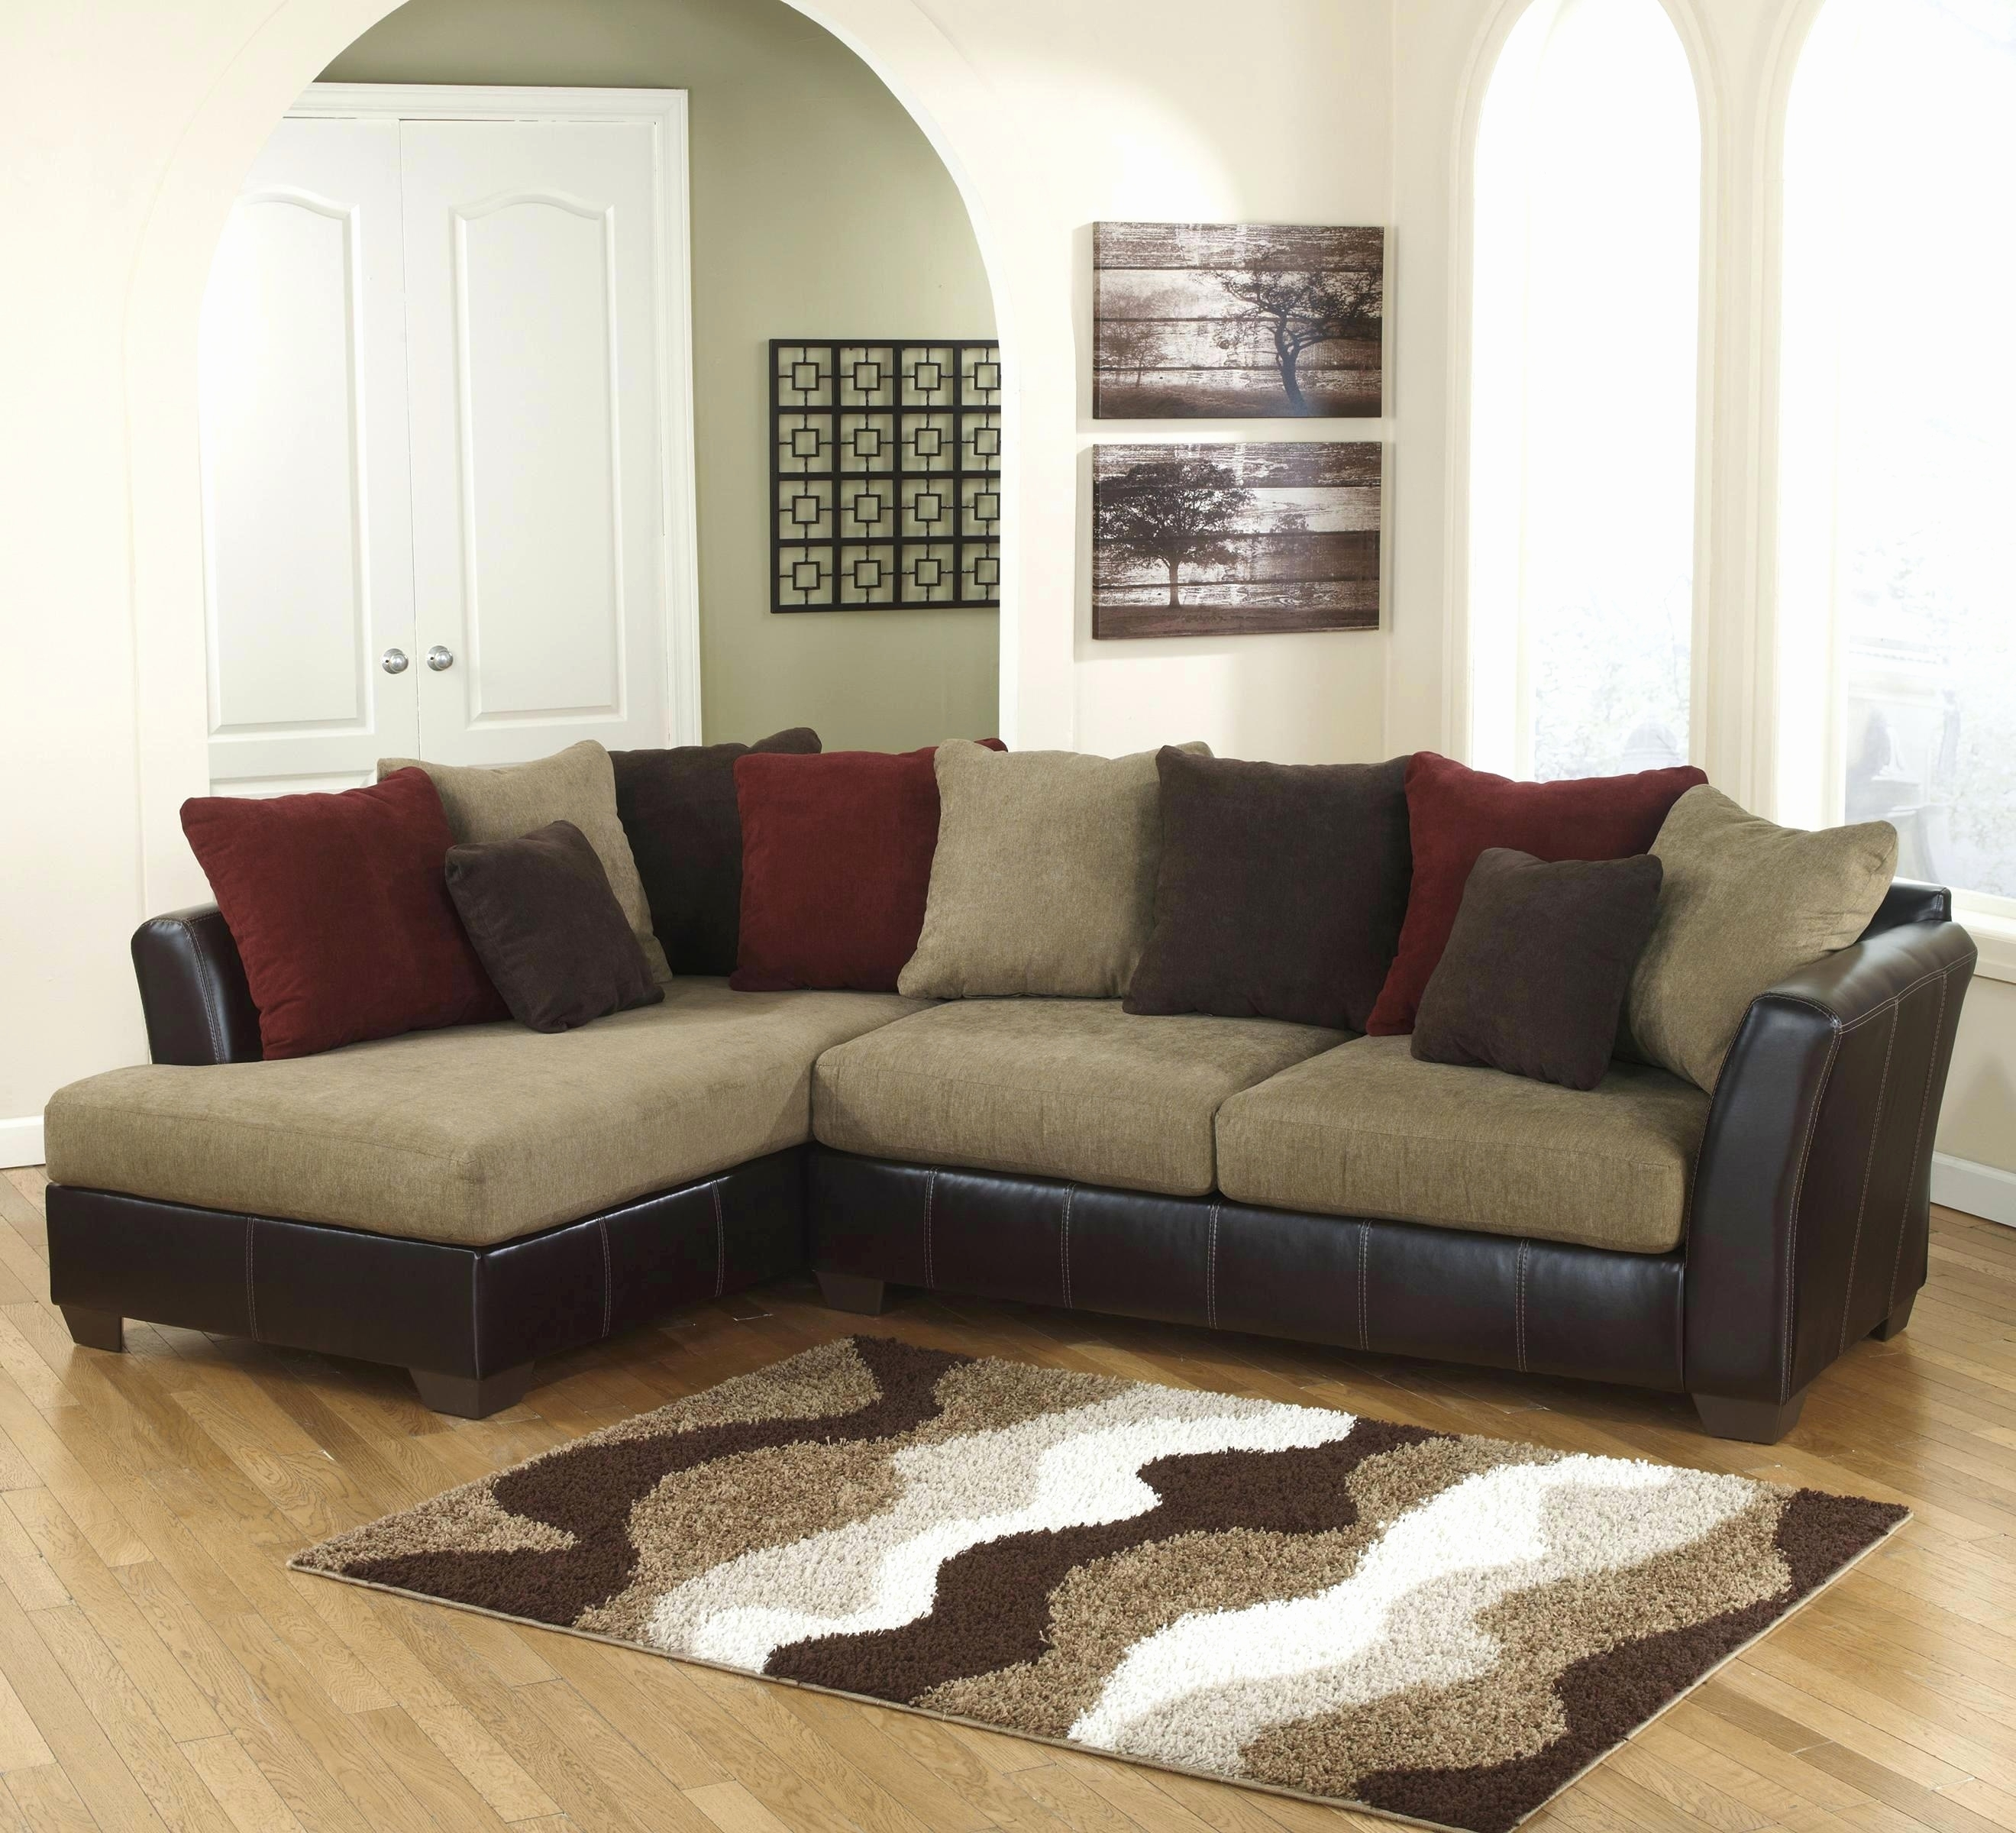 Furniture : New Ashley Furniture Sectional Sofas 2018 E28093 Couches Intended For Sectional Sofas At Ashley Furniture (View 8 of 15)